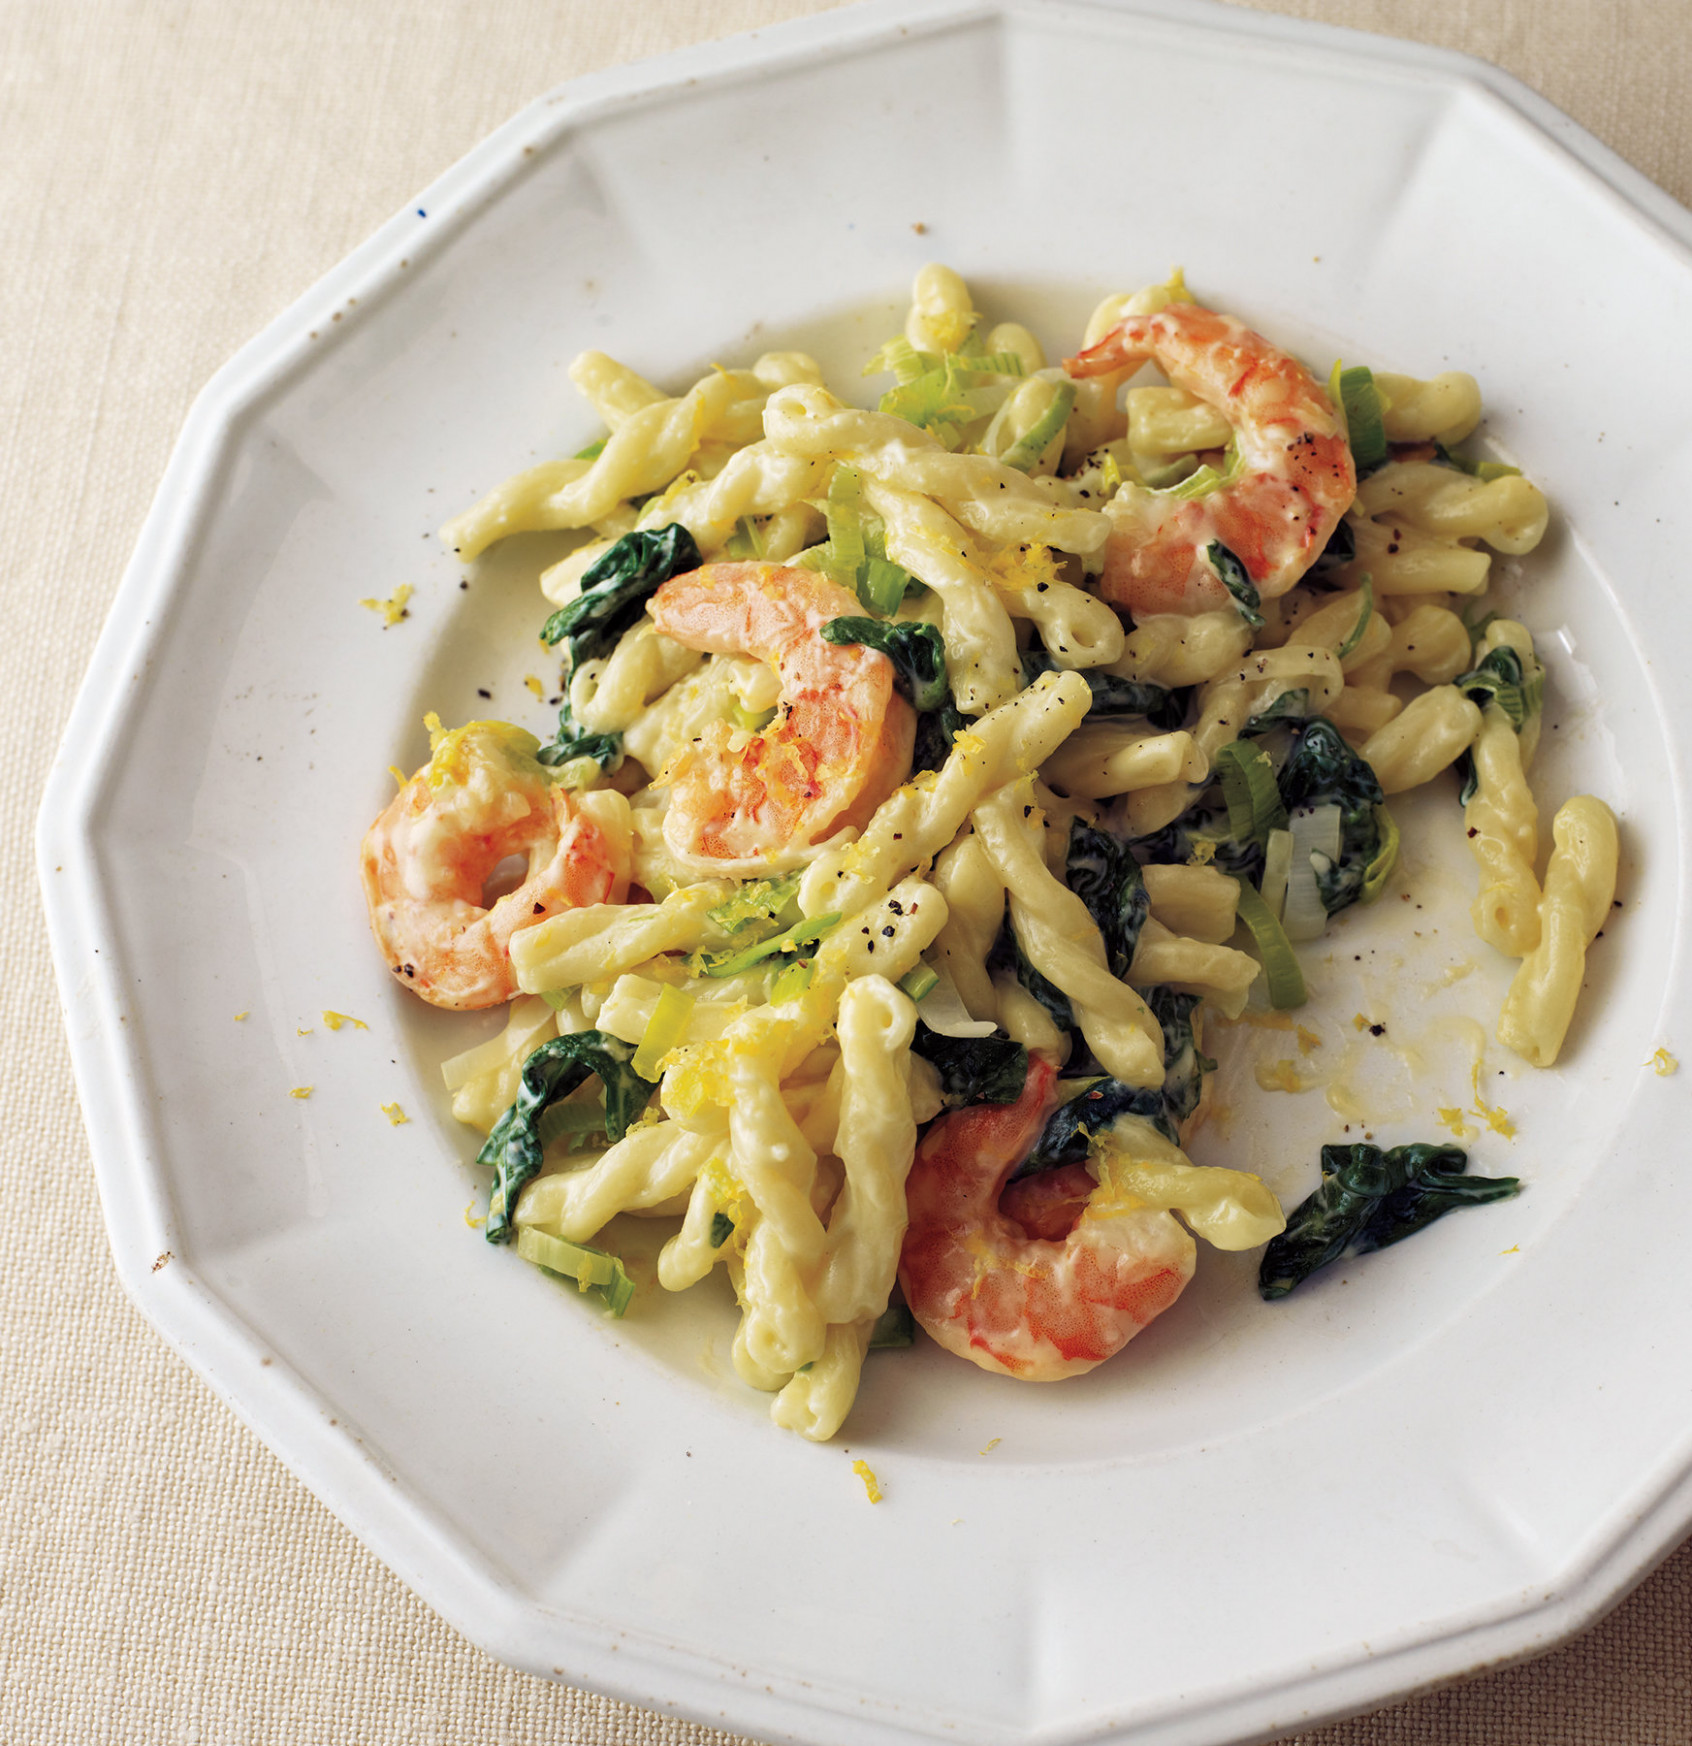 13 Fast Dinner Ideas For Any Night Of The Week - Recipes Easy Dinner For Two